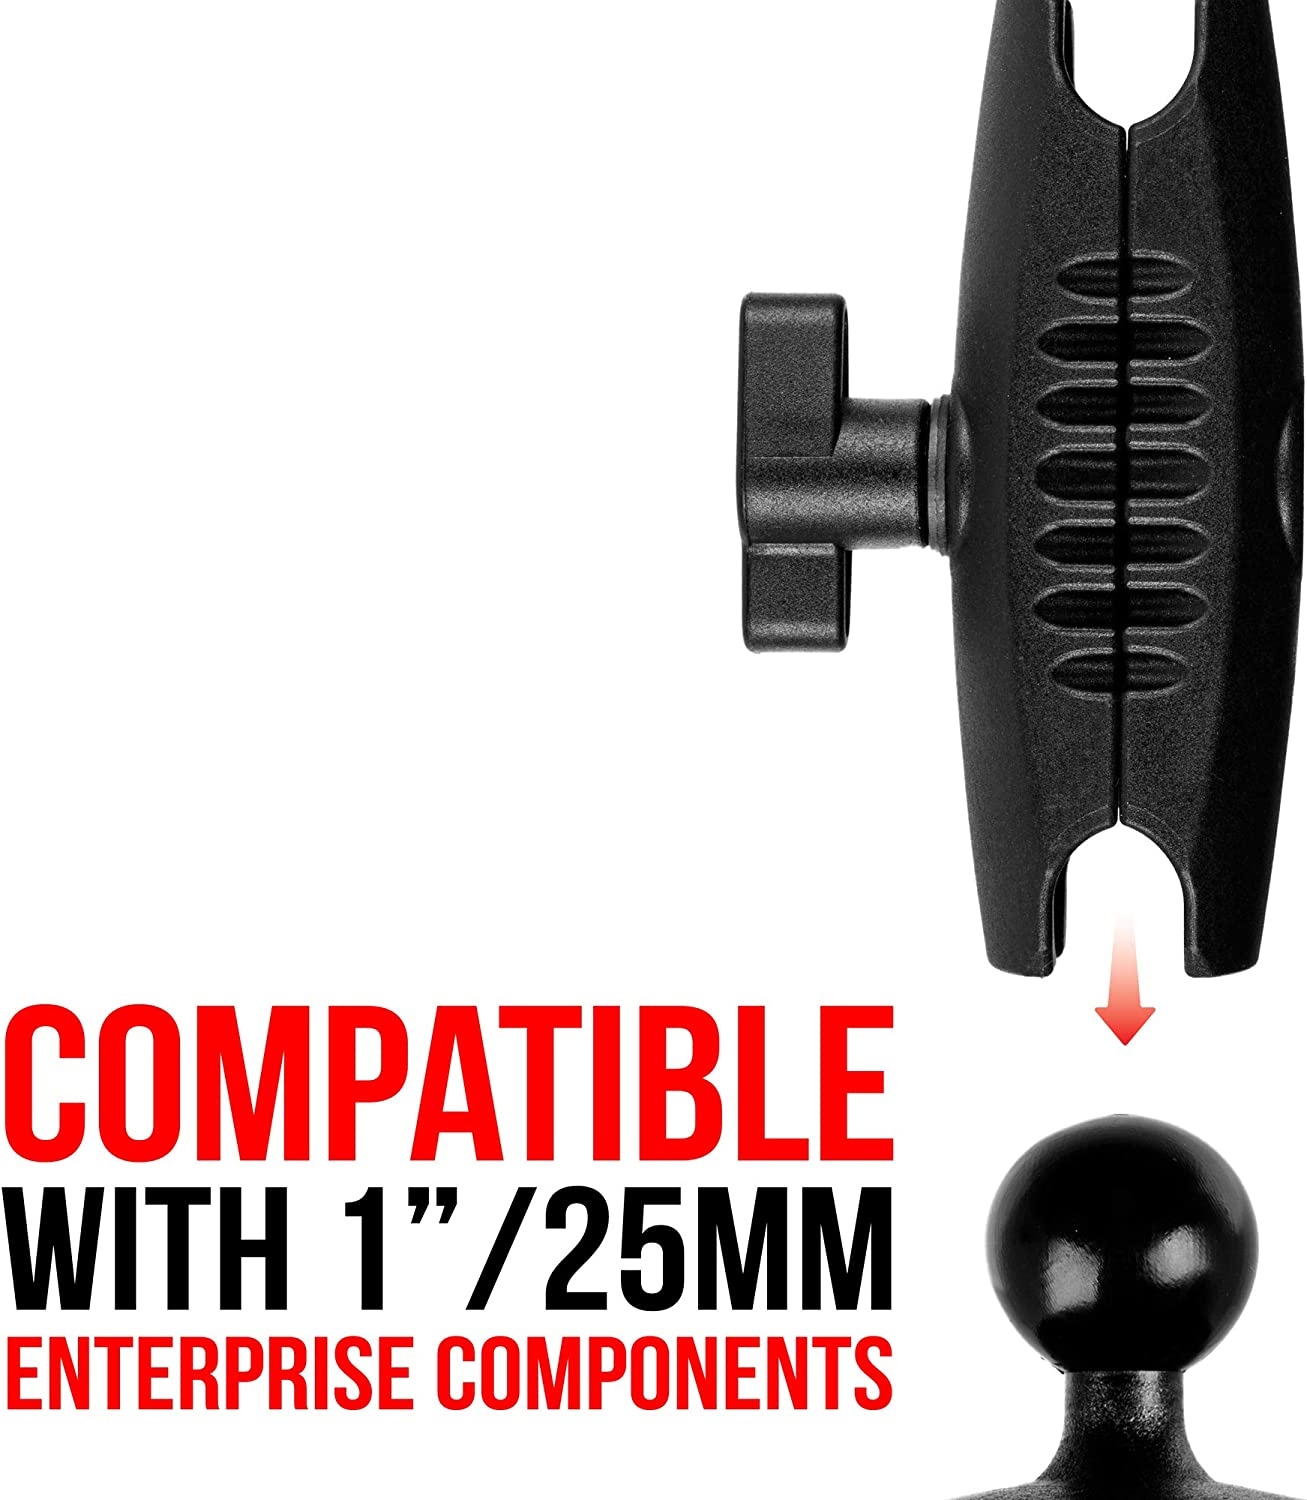 Tackform Enterprise Series. Compatible with RAM and 1 Ball Systems from Arkon Single Thumbscrew iBolt and More 3.75 Composite ABS Plastic Arm with Dual 1 Ball sockets